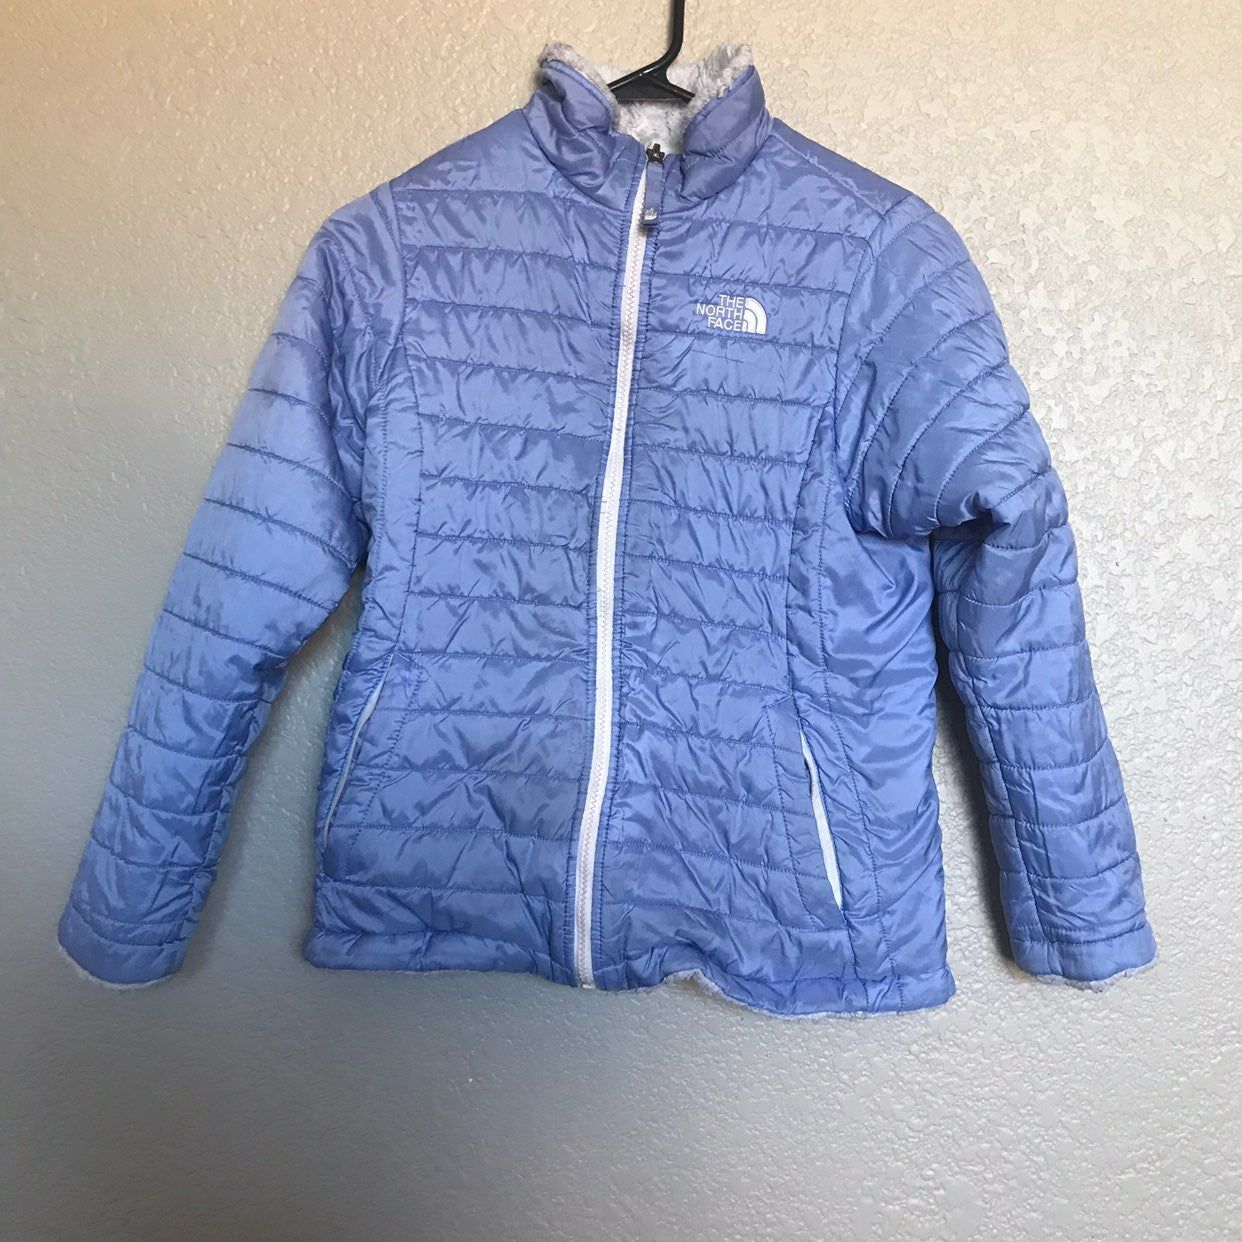 The North Face Girls Reversible Periwinkle And Off White Grey Jacket Hole In Sleeve Pictured And Some Discoloring Pict North Face Girls North Face Coat Jackets [ 1242 x 1242 Pixel ]